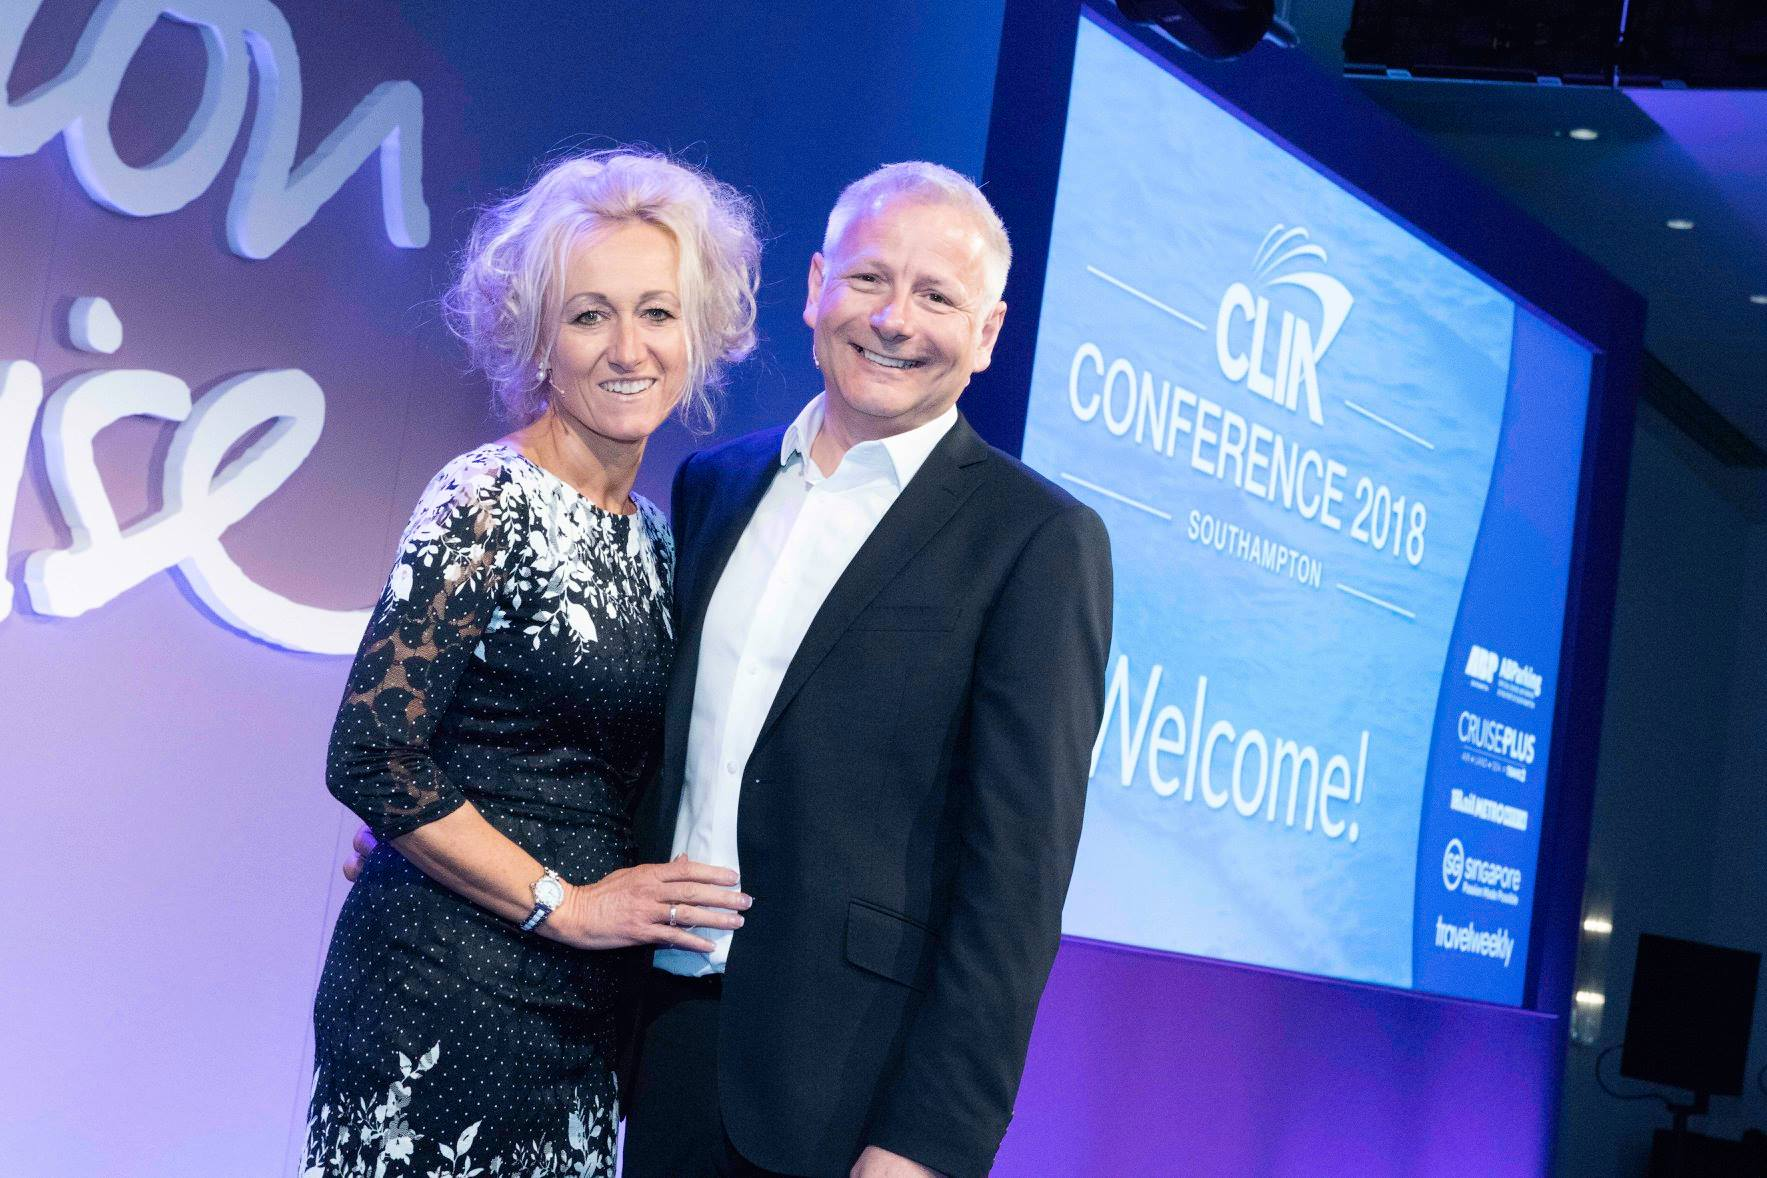 Andy Harmer & Lucy Huxley (Travel Weekly) at CLIA Conference 2018.